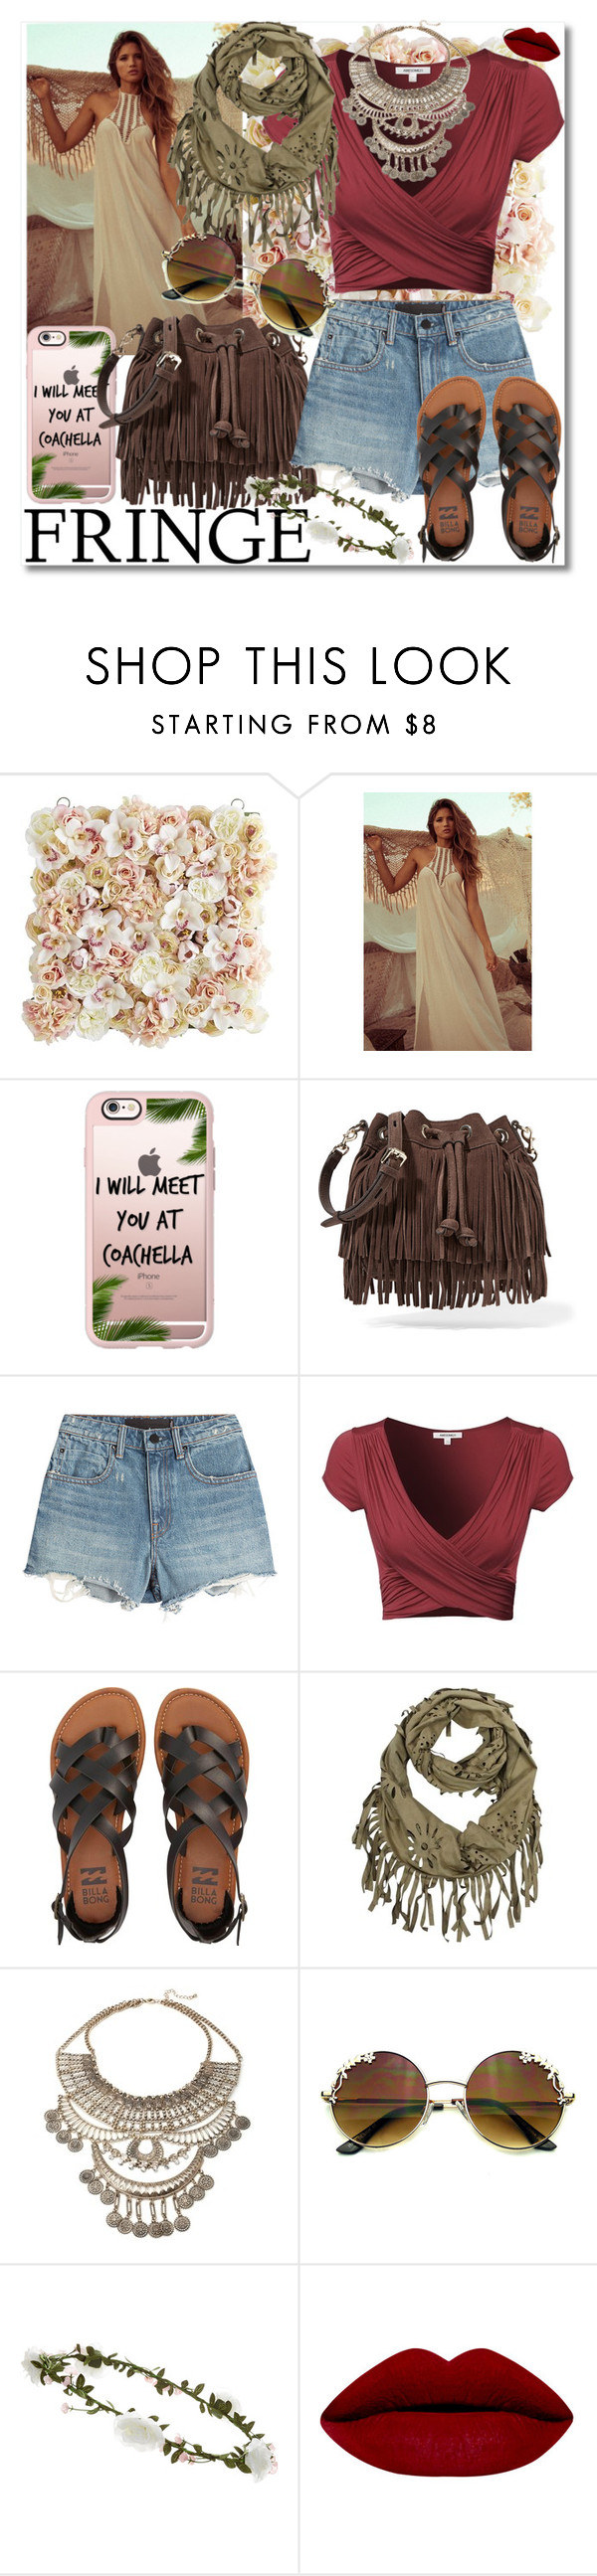 """""""catch ya at coachella."""" by rach-is-a-fashion-major ❤ liked on Polyvore featuring Pier 1 Imports, Casetify, Rebecca Minkoff, Alexander Wang, Billabong, Accessorize, fringe, boho, festival and coachella"""